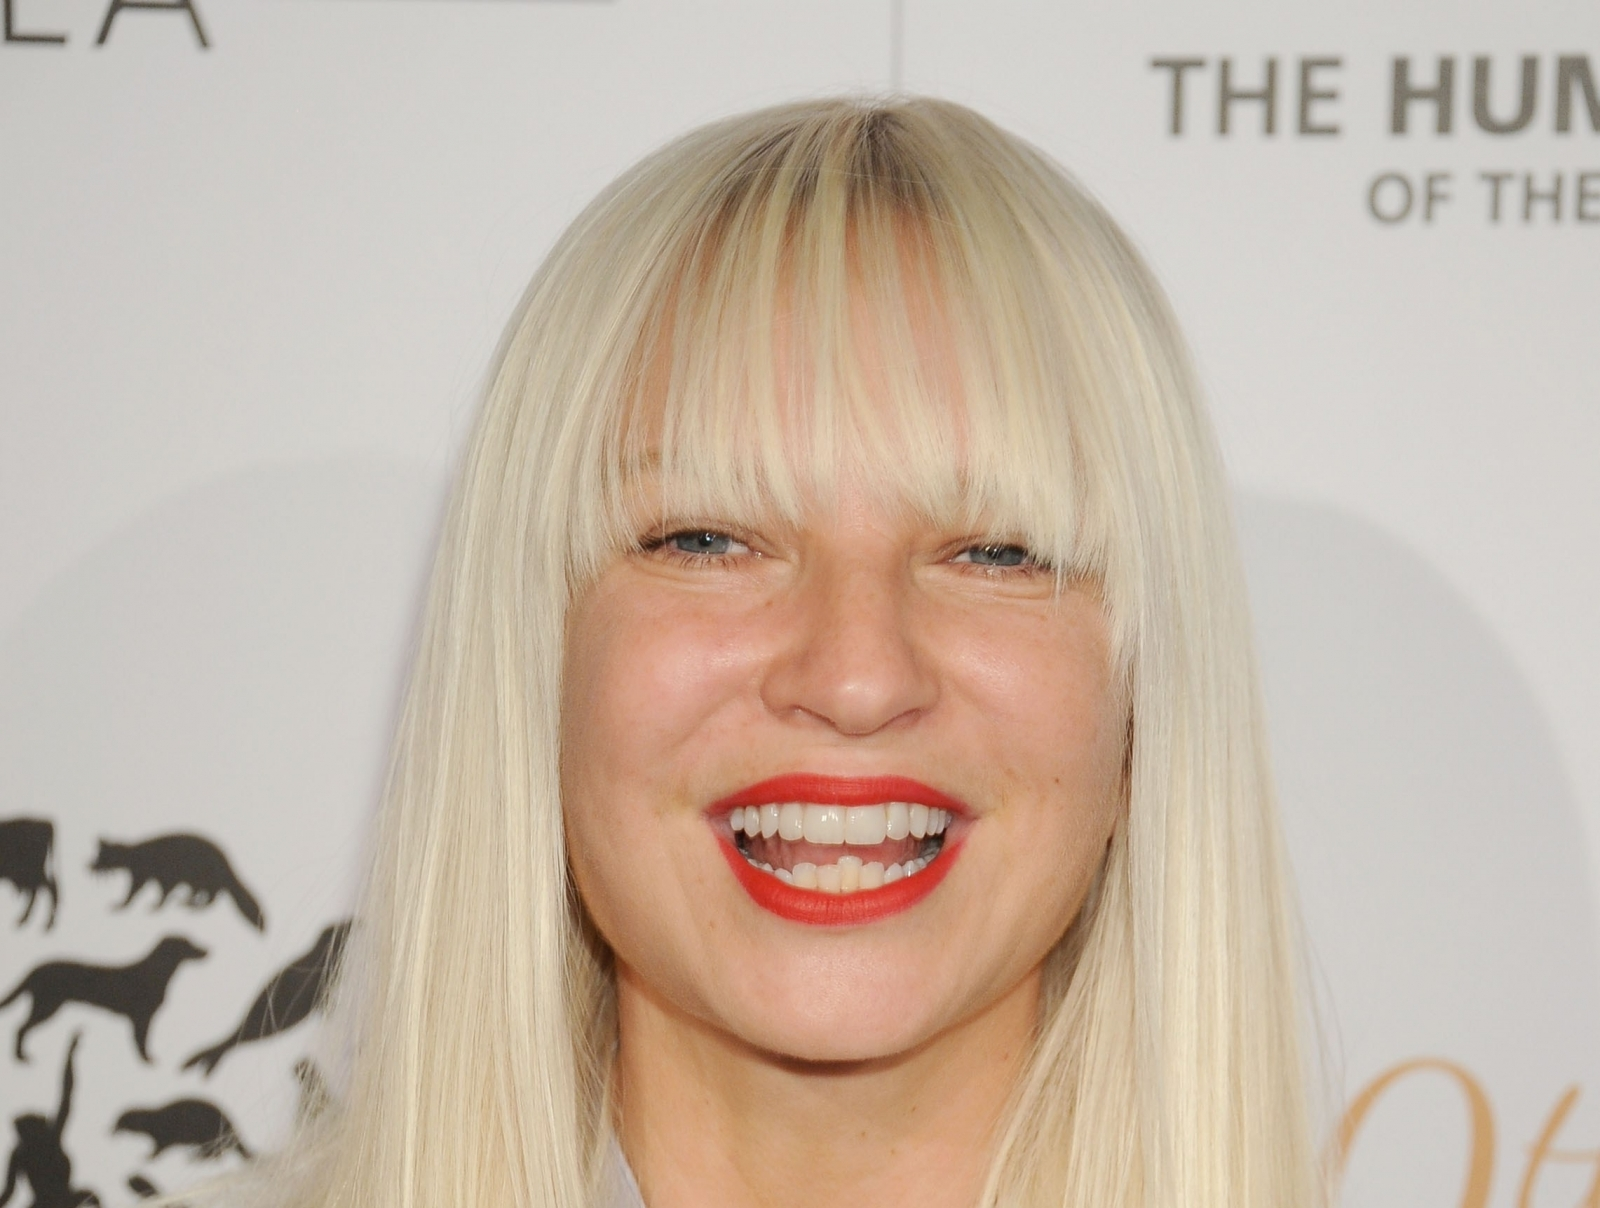 Sia: Pop Star Sia Exposes Bit Too Much Skin As She Suffers